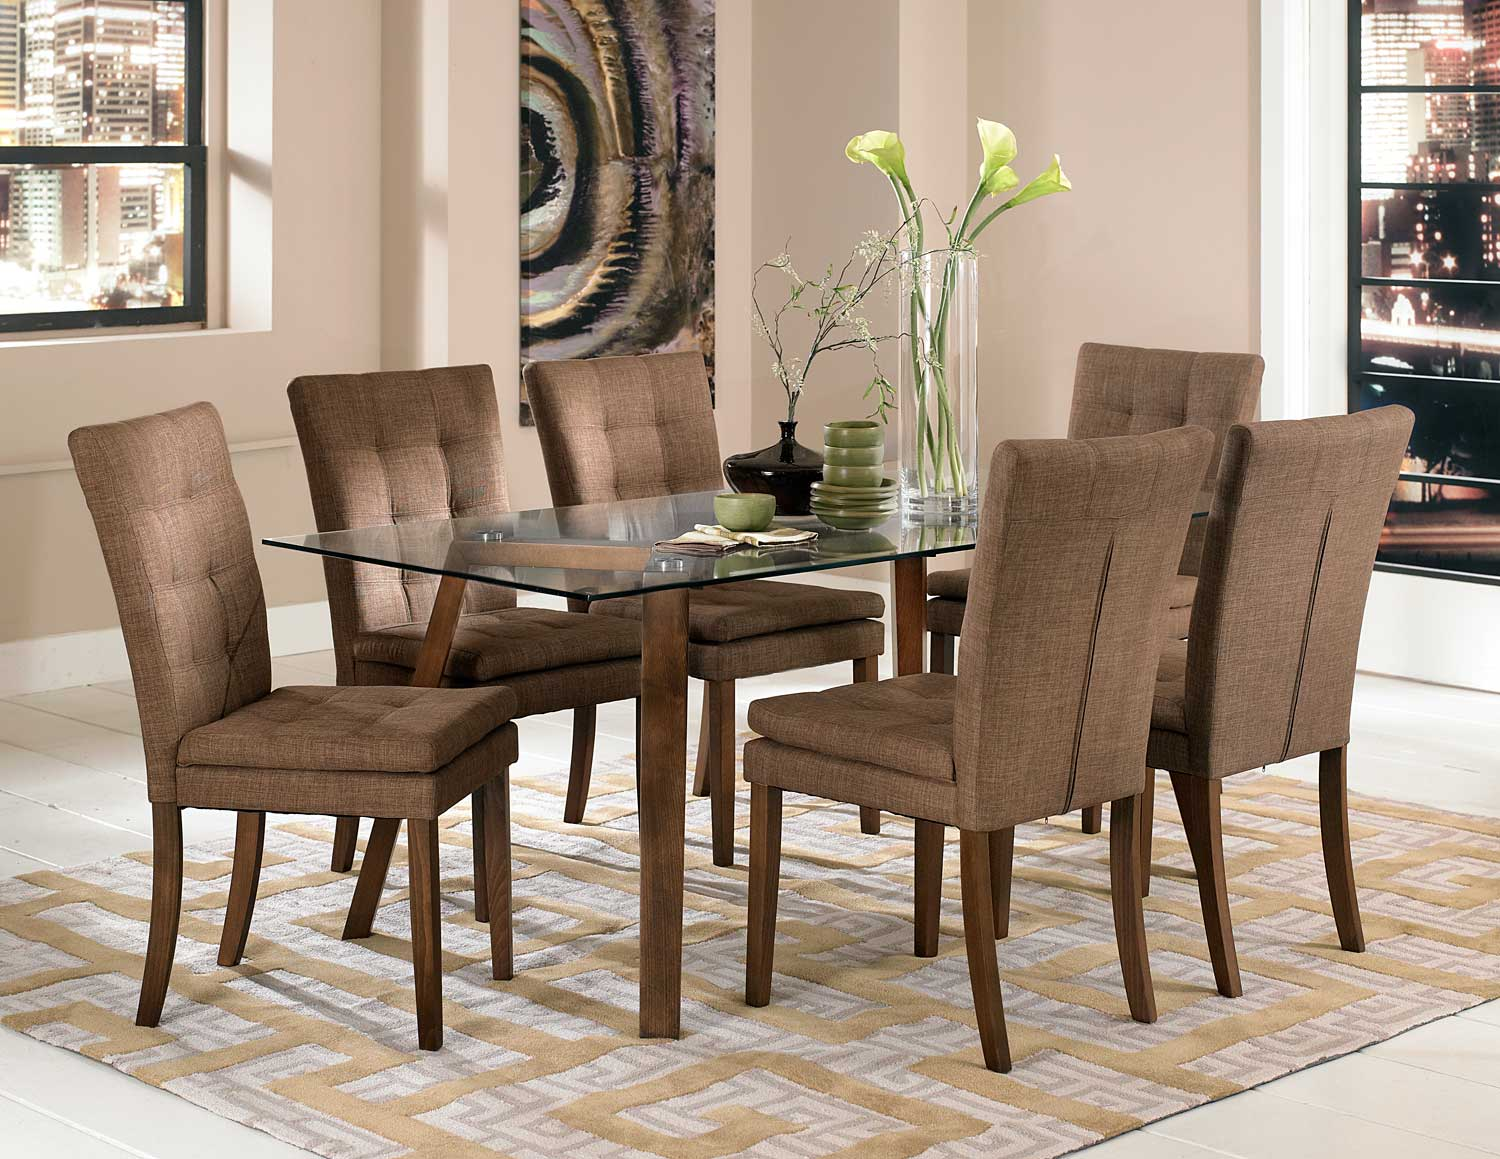 Homelegance Maitland Dining Set - Natural